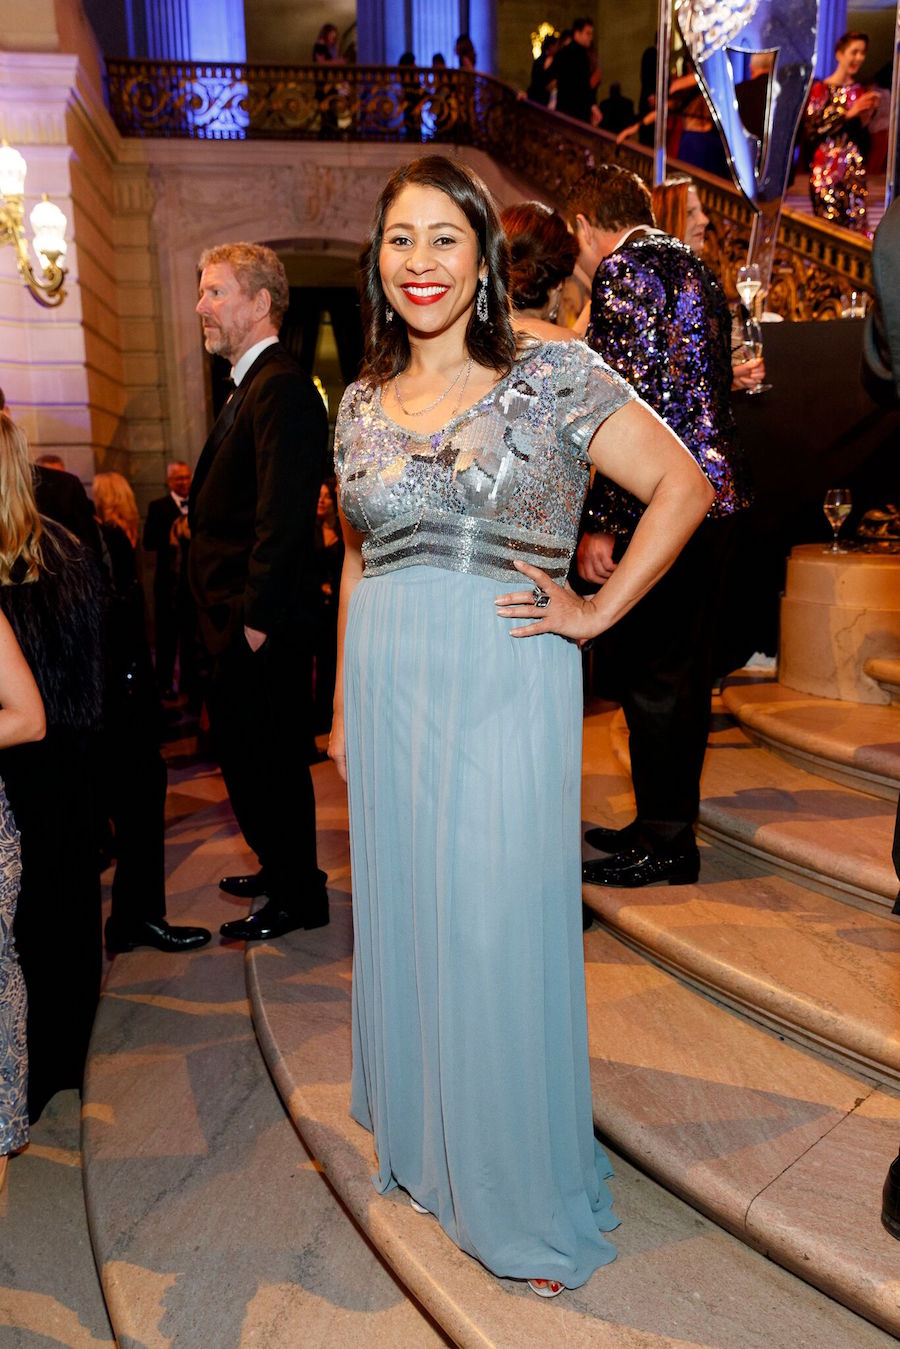 Looking gorgeous at the San Francisco Ballet Opening in January